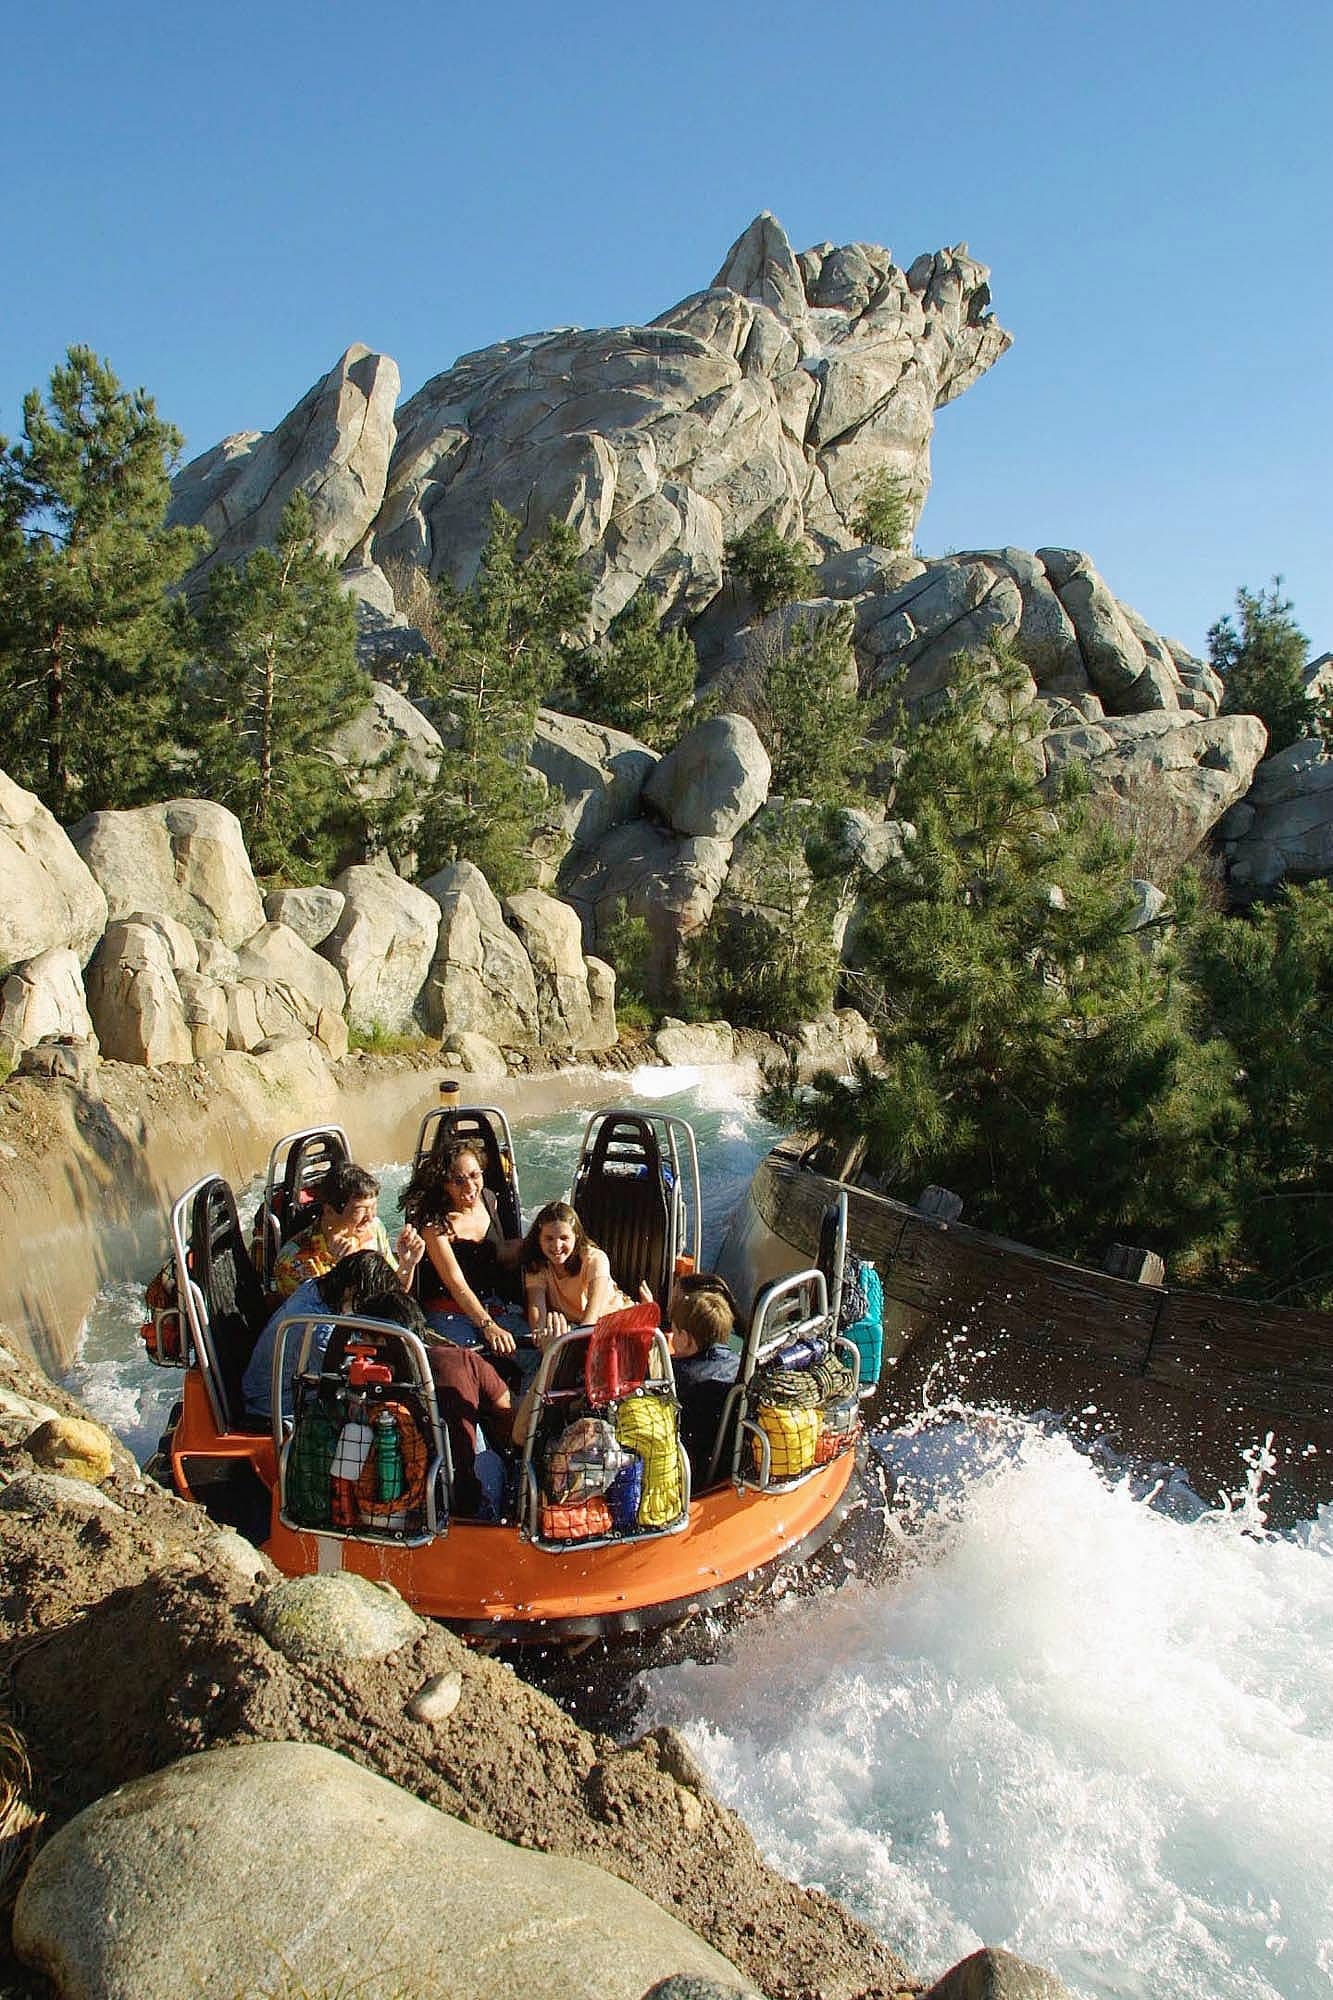 Grizzly River Run can be a dry or a VERY wet ride ~ 17 Scariest Rides at Disneyland and Disney California Adventure